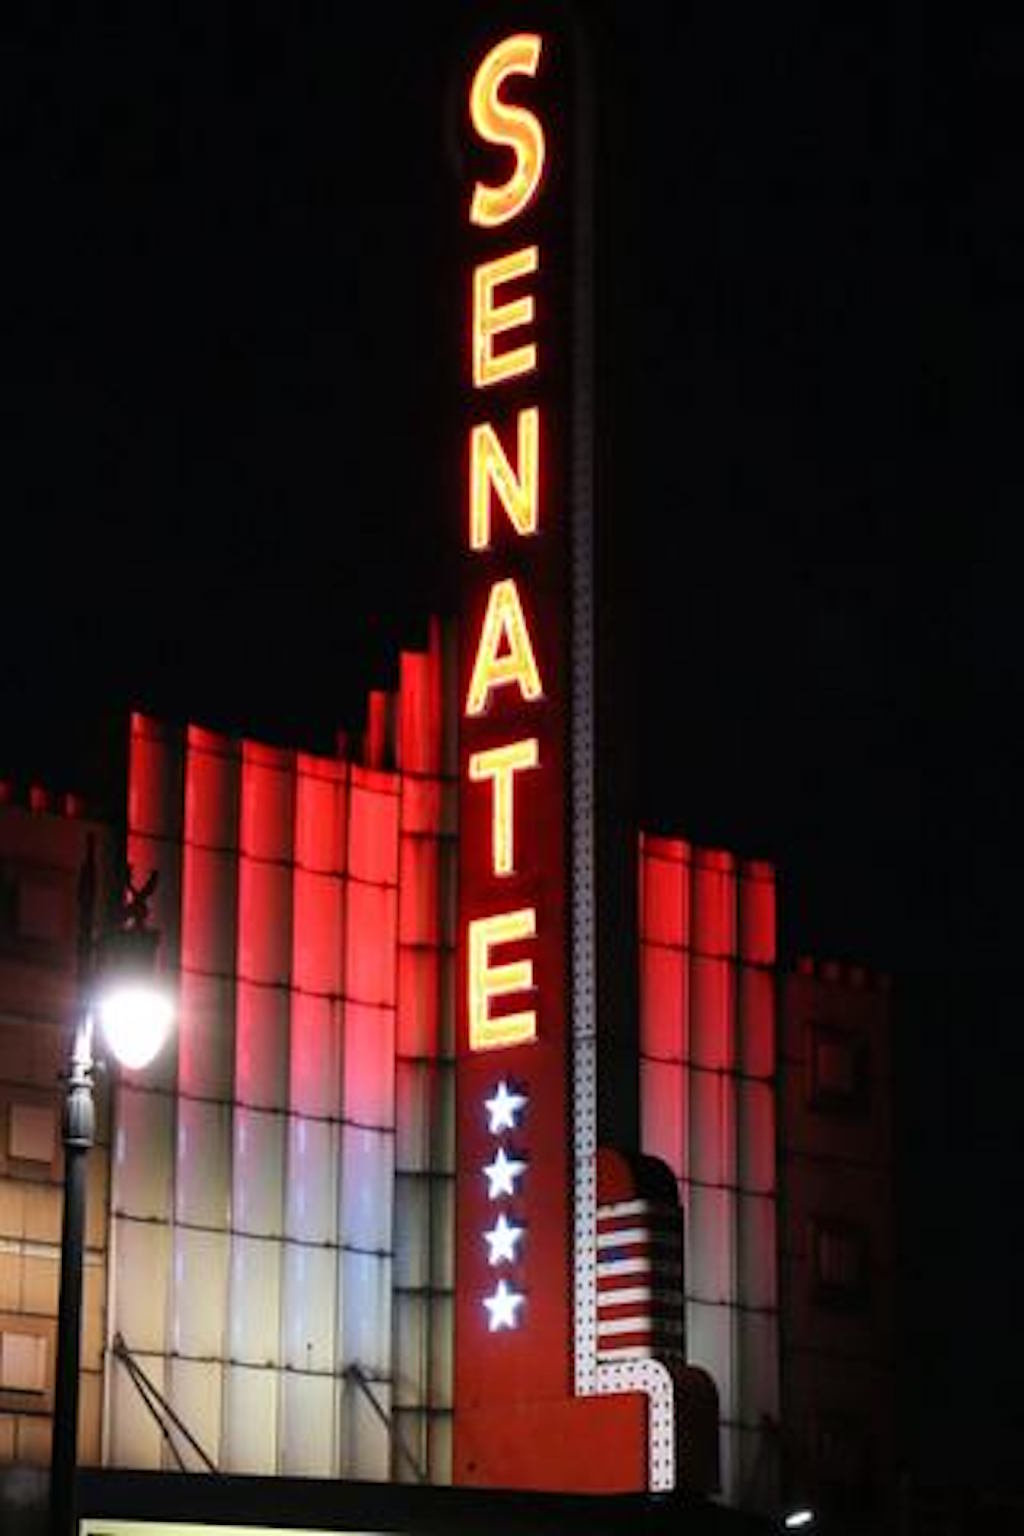 Senate Theater in Southwest Detroit